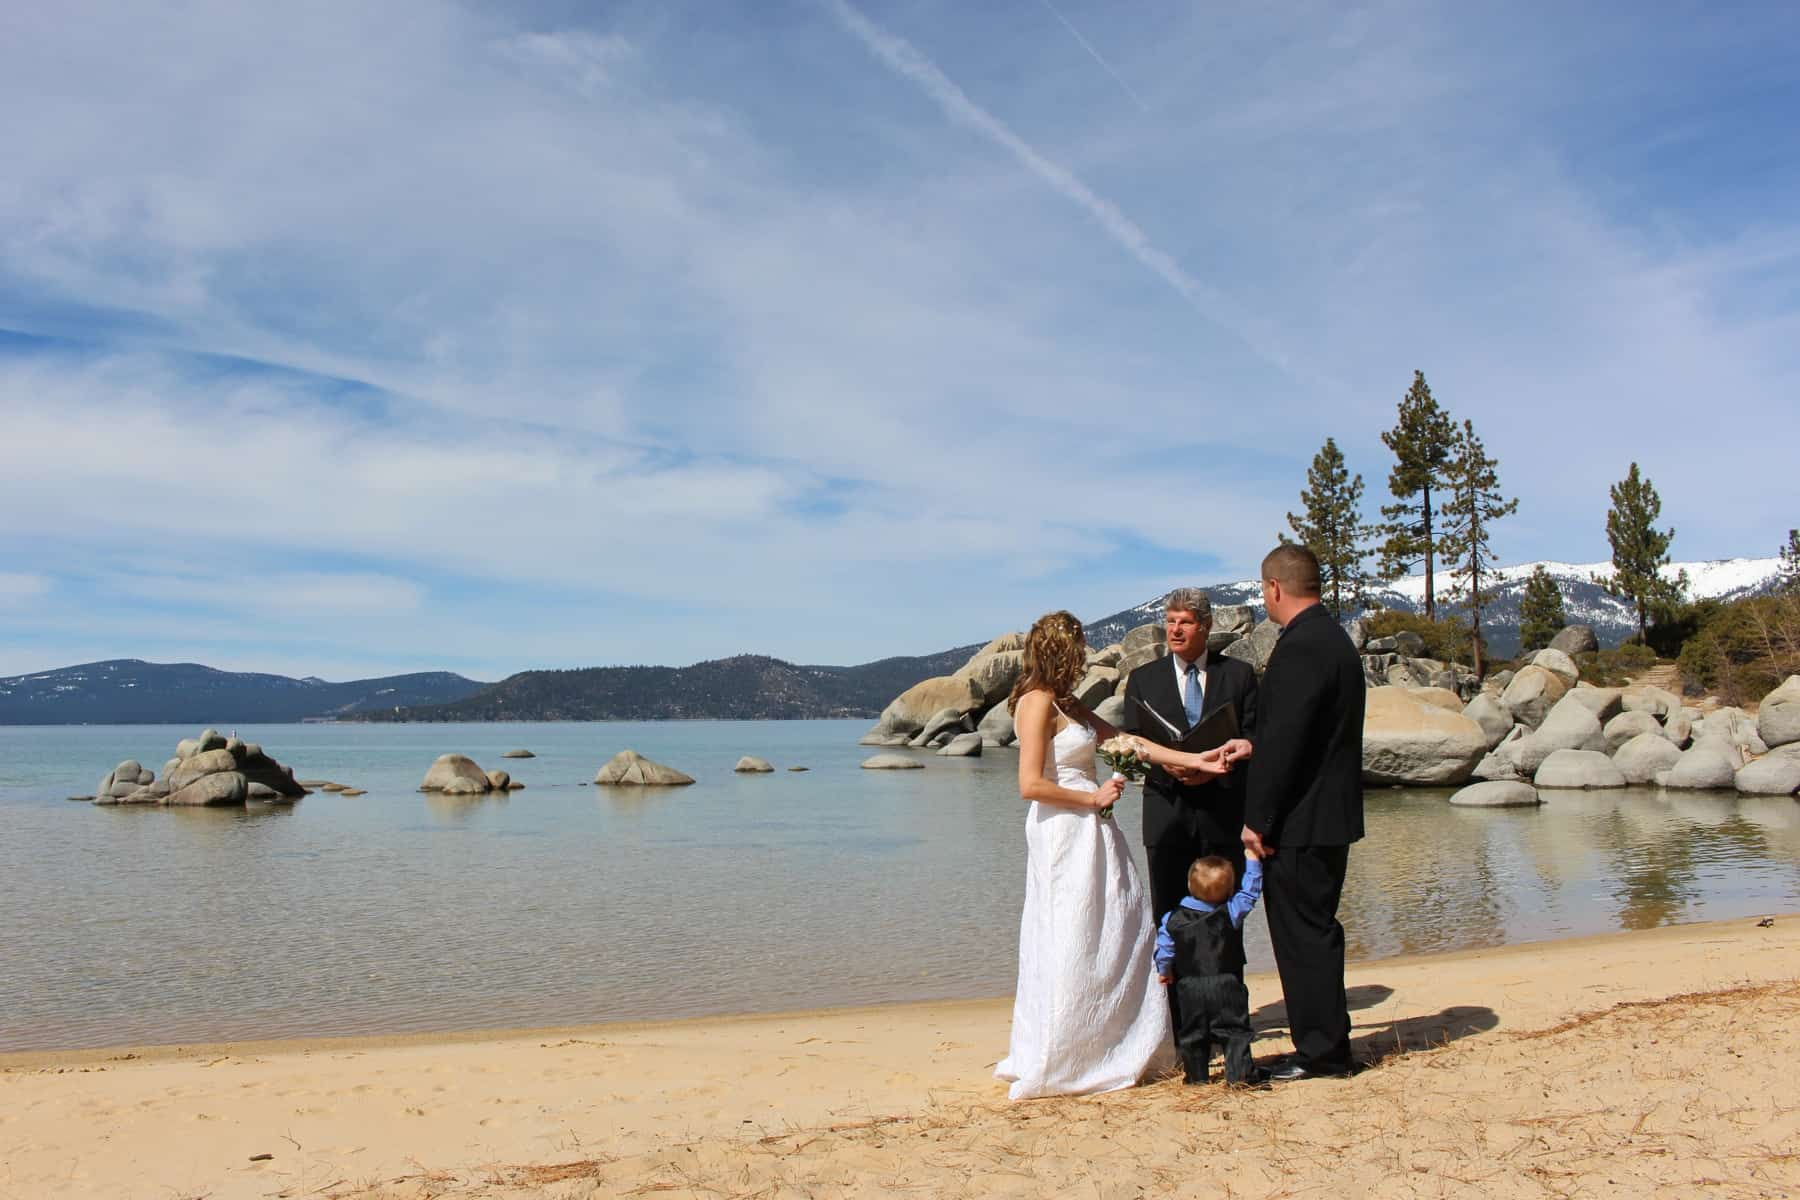 The Ultimate Guide to Planning an Elopement in the US